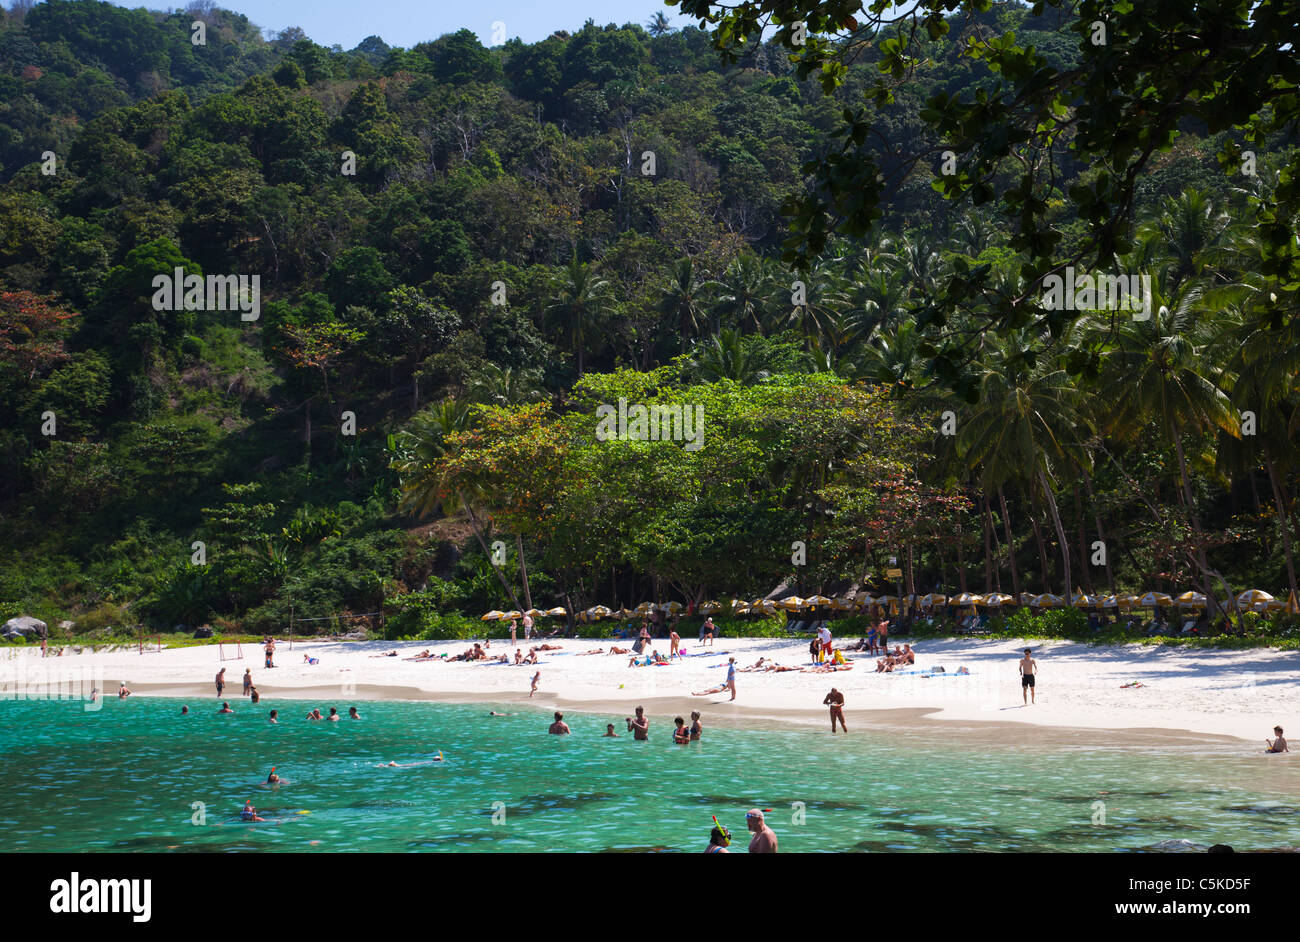 View over iconic tropical beach at 'Paradise Beach' with people on the beach and in the sea - Stock Image